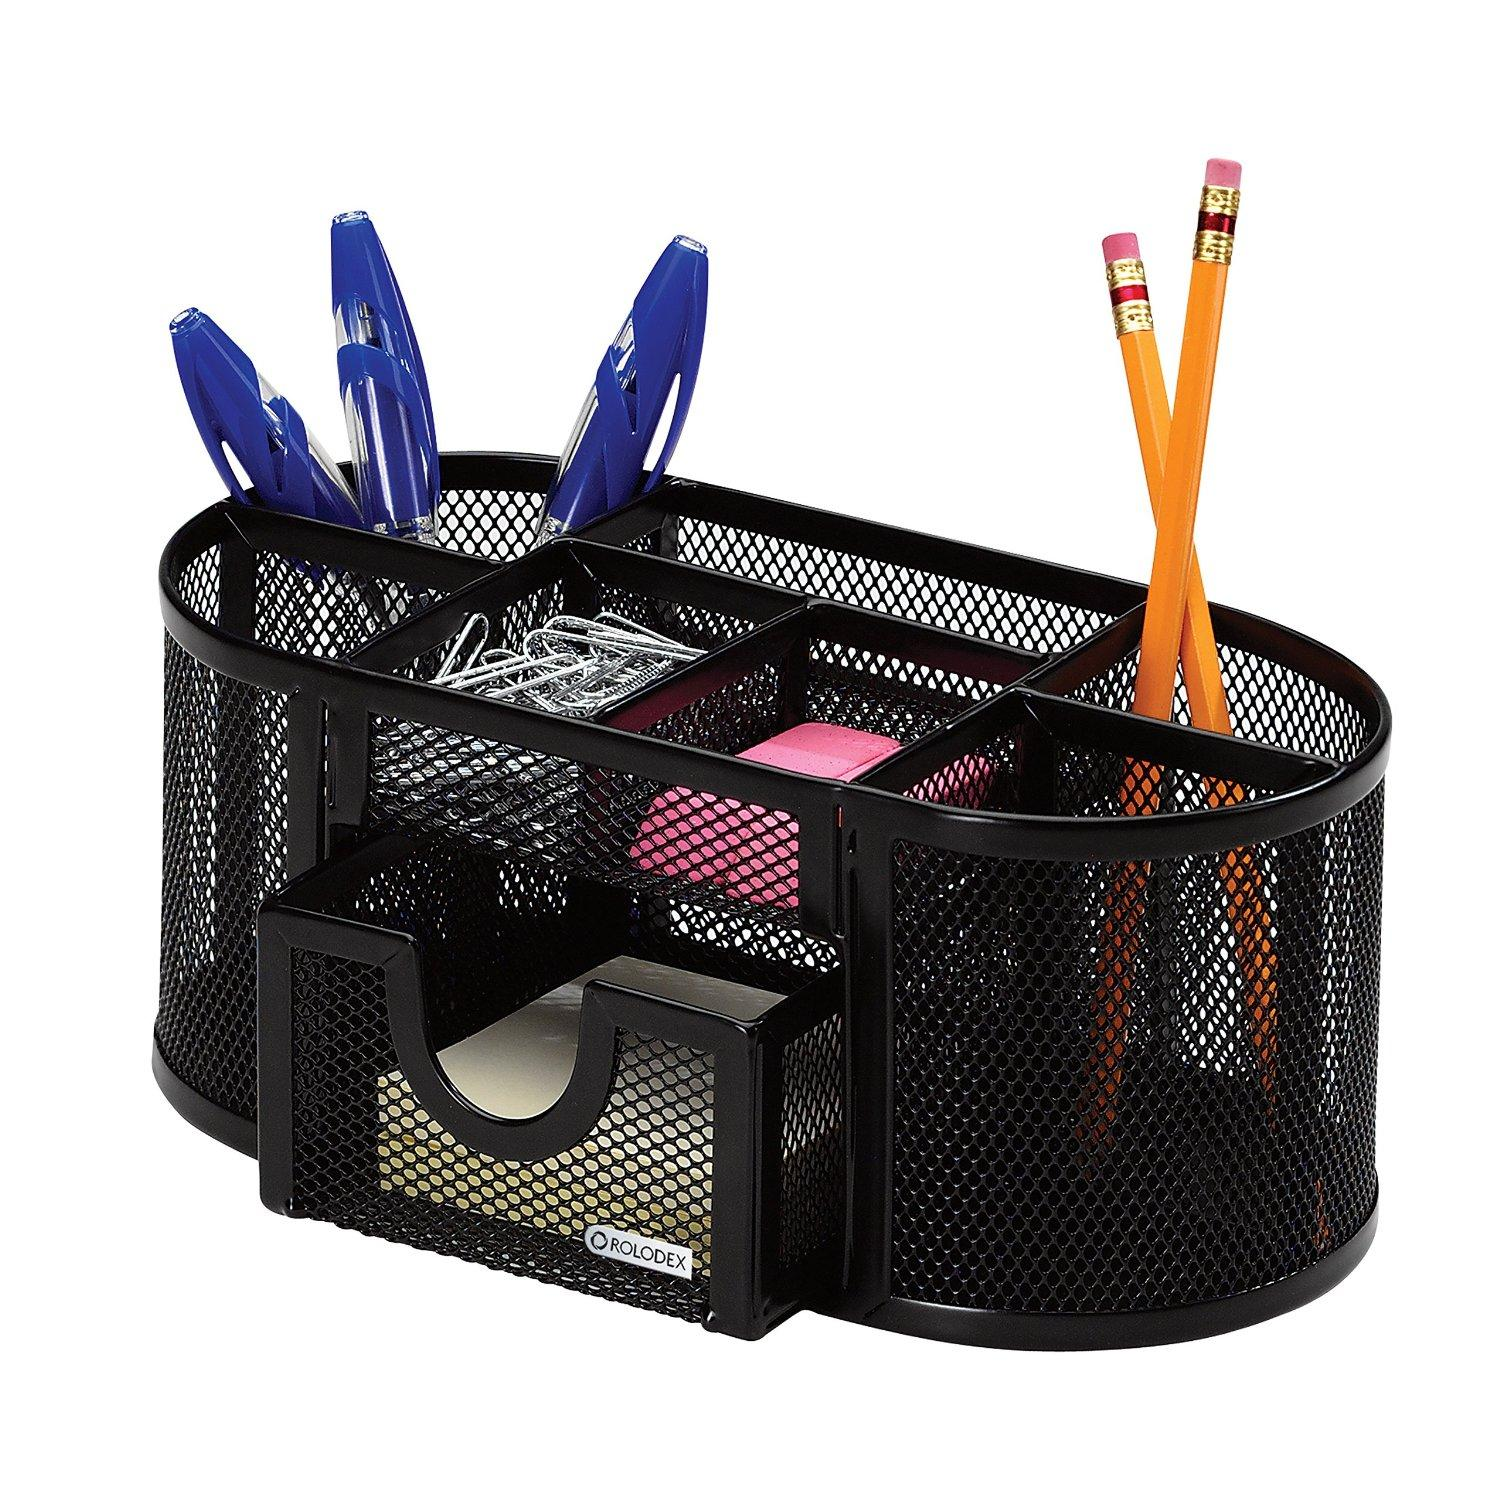 From $2.69 Select Rolodex Mesh Collection Sale @ Amazon